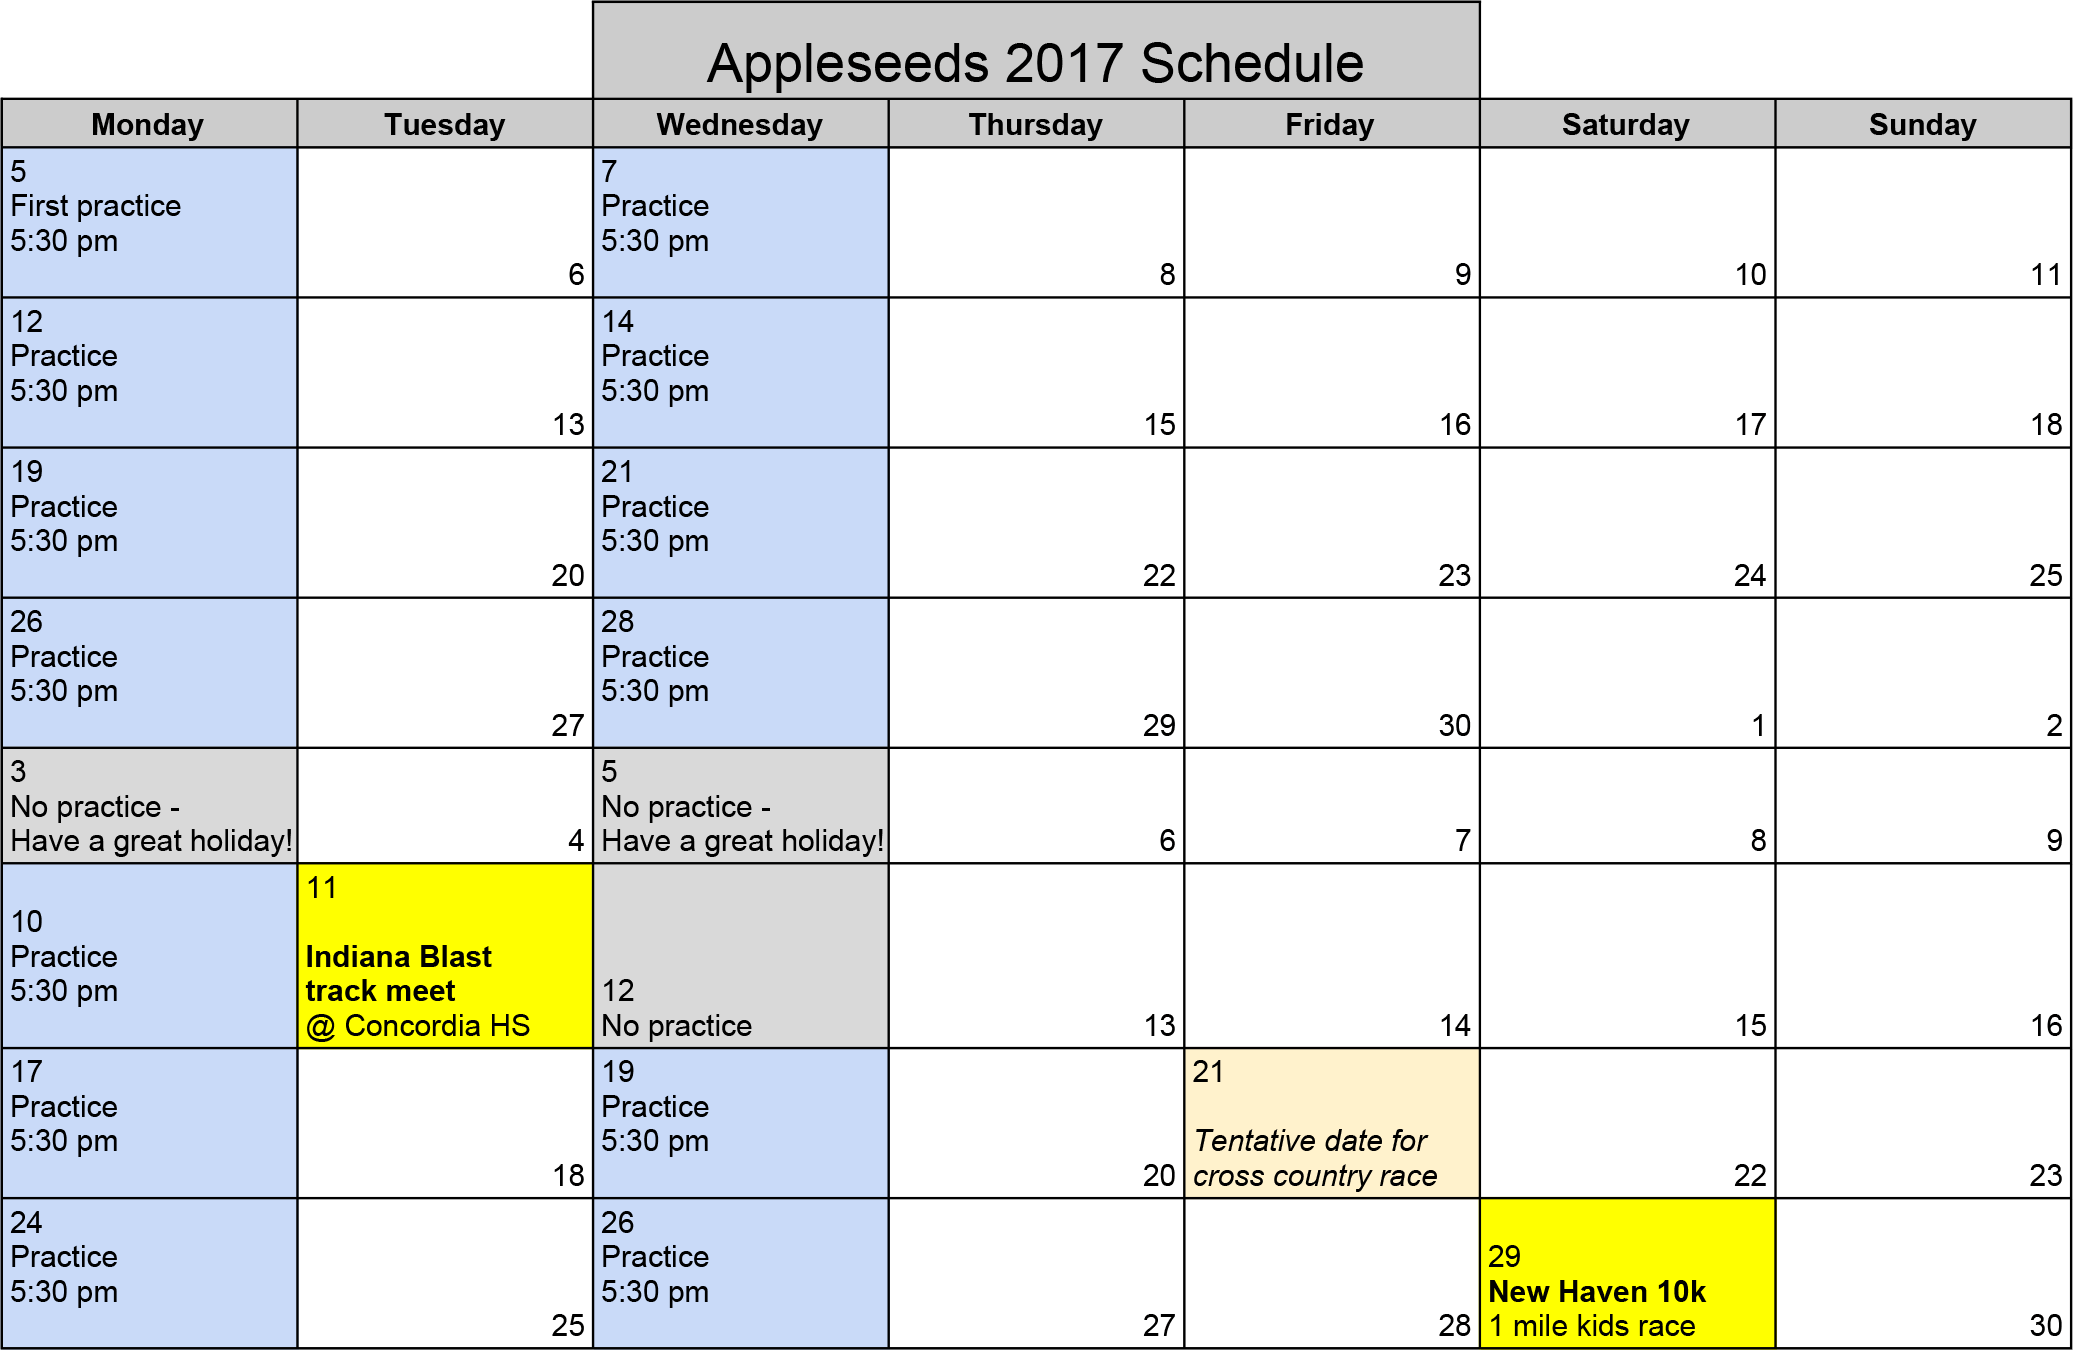 Appleseeds Schedule 2017